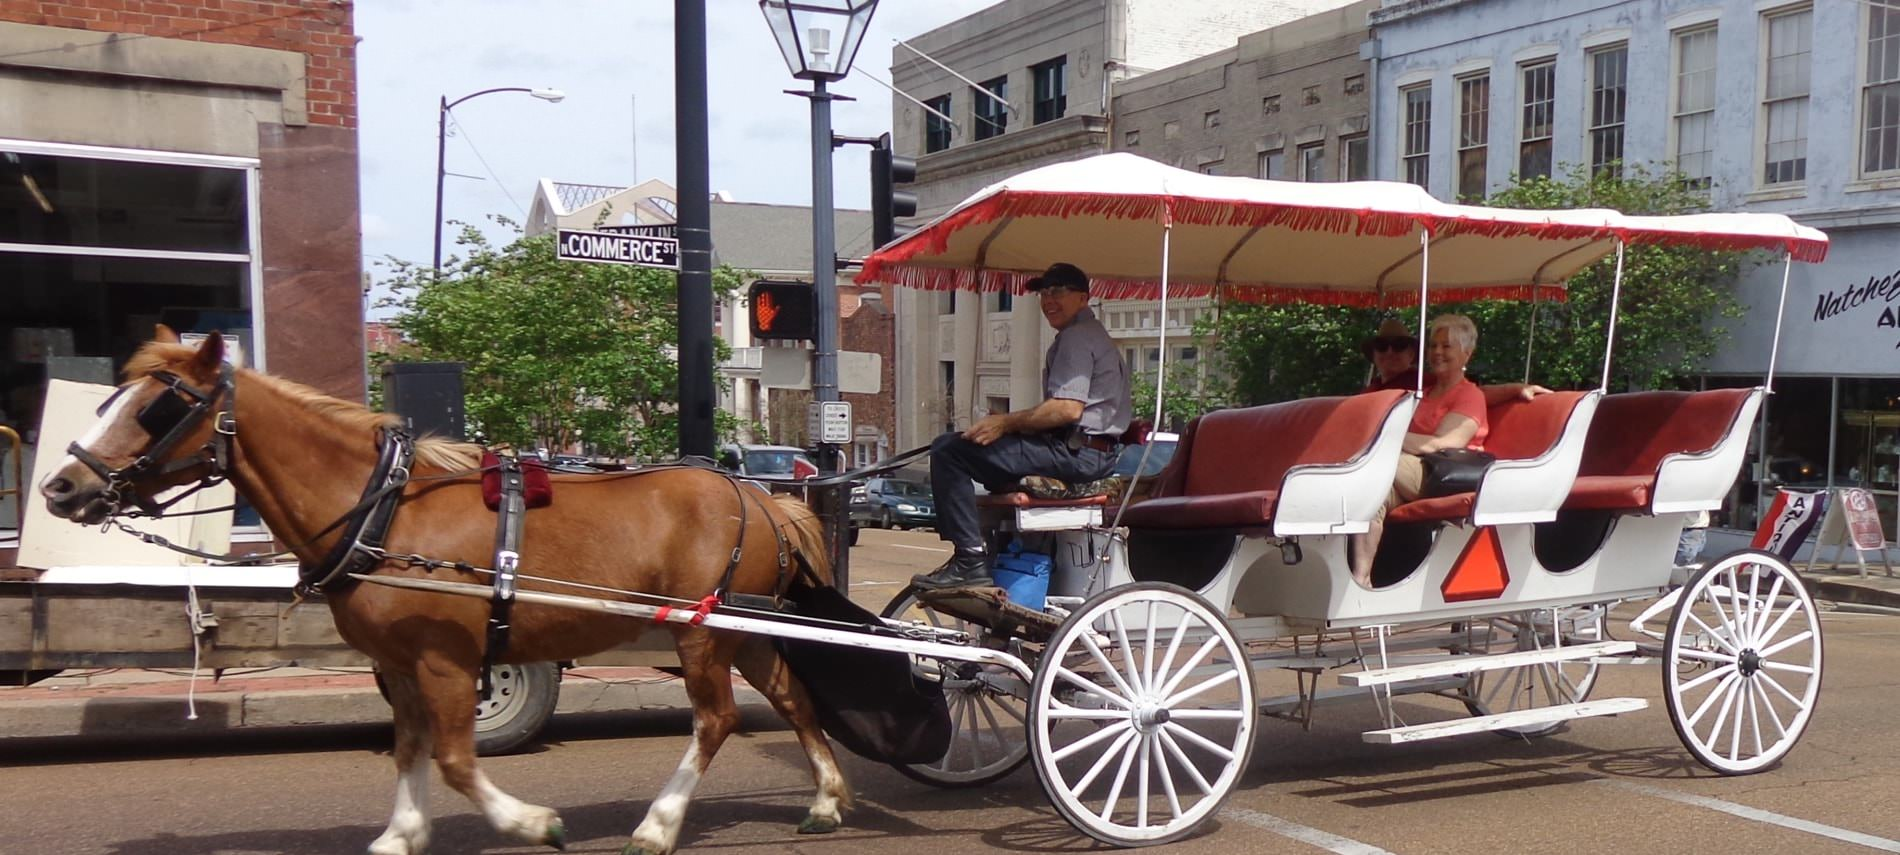 A man and two passengers enjoying a carriage ride pulled by a beautiful brown horse downtown Natchez